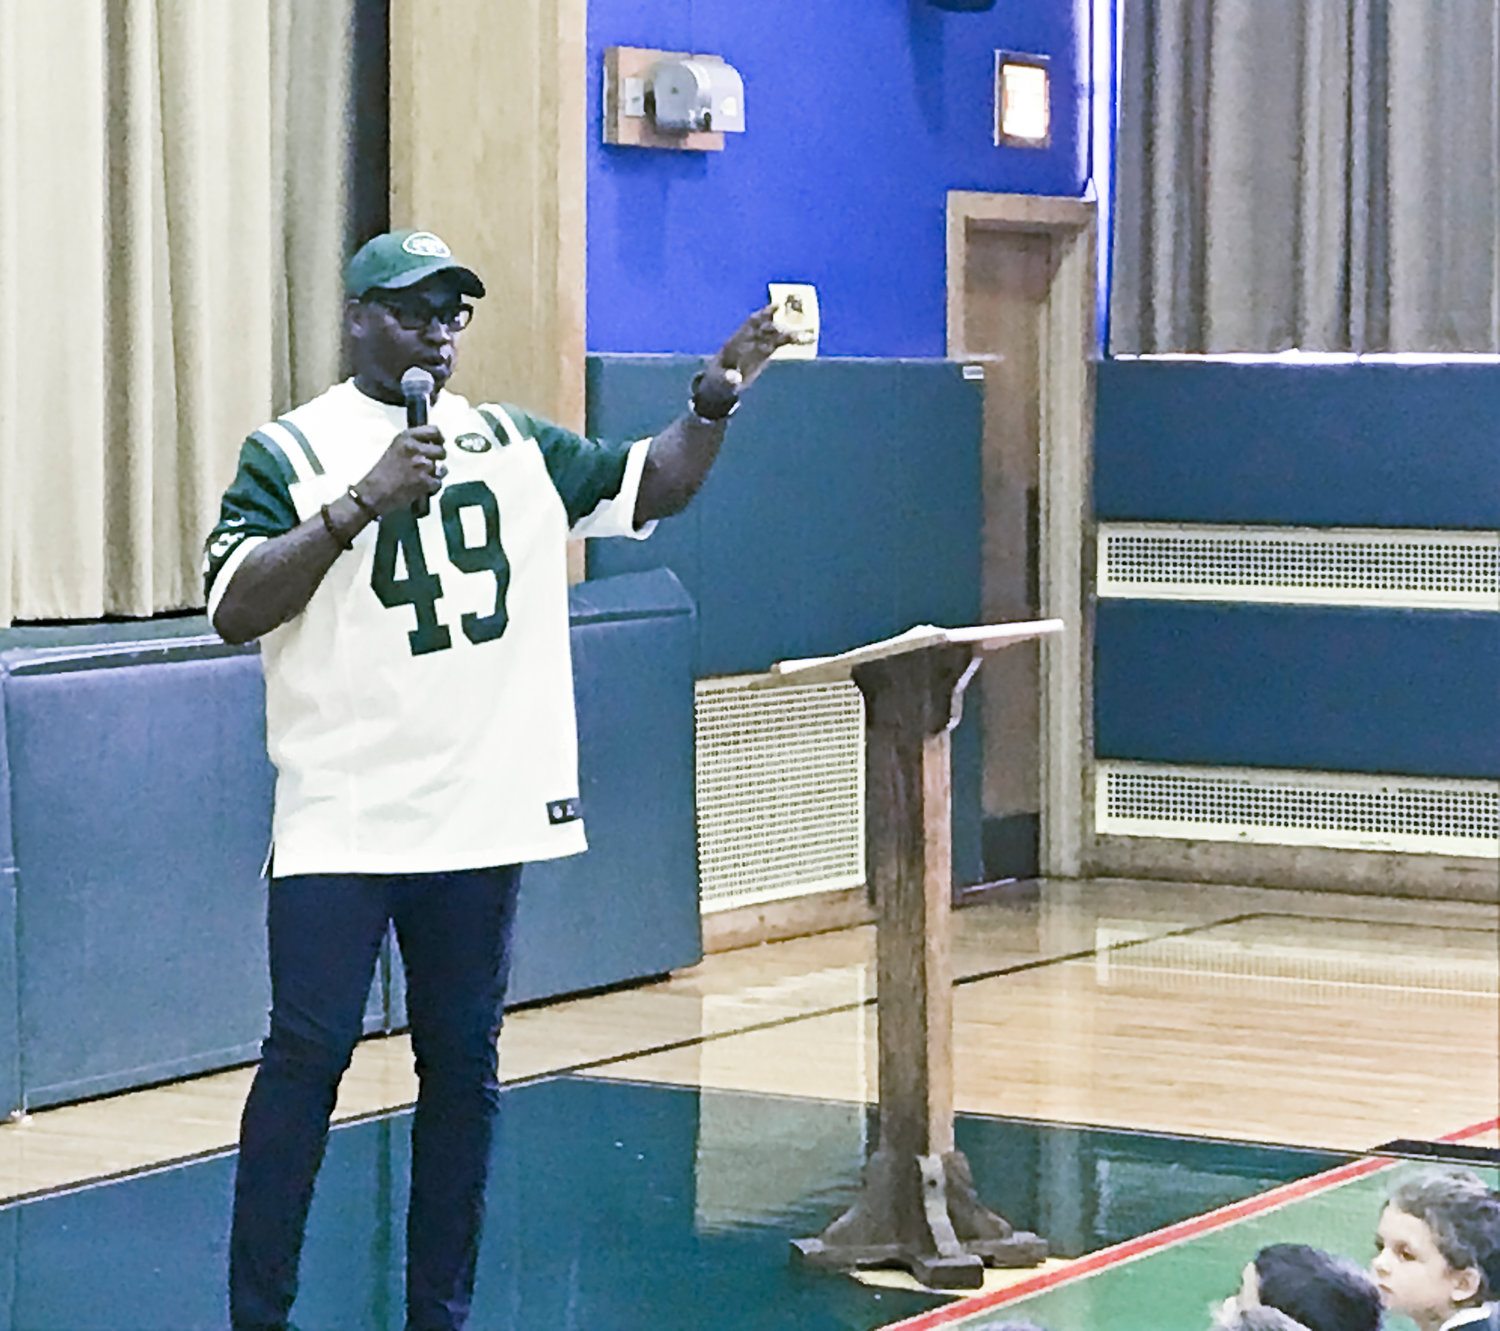 Richardson visited students at Waverly Park Elementary School on Oct. 26 as part of the school's Health and Wellness Week.